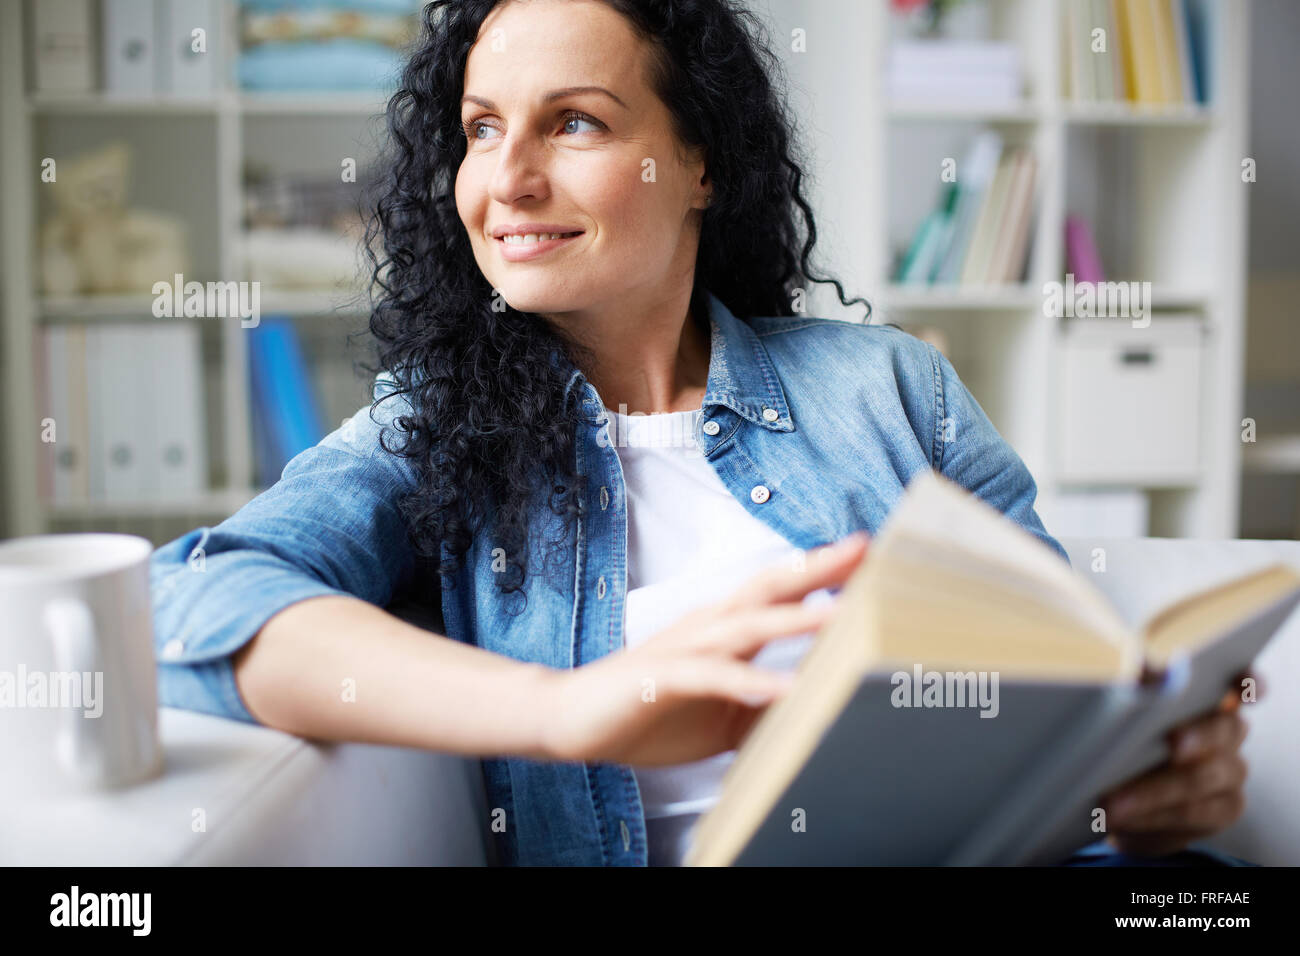 Reading tale - Stock Image